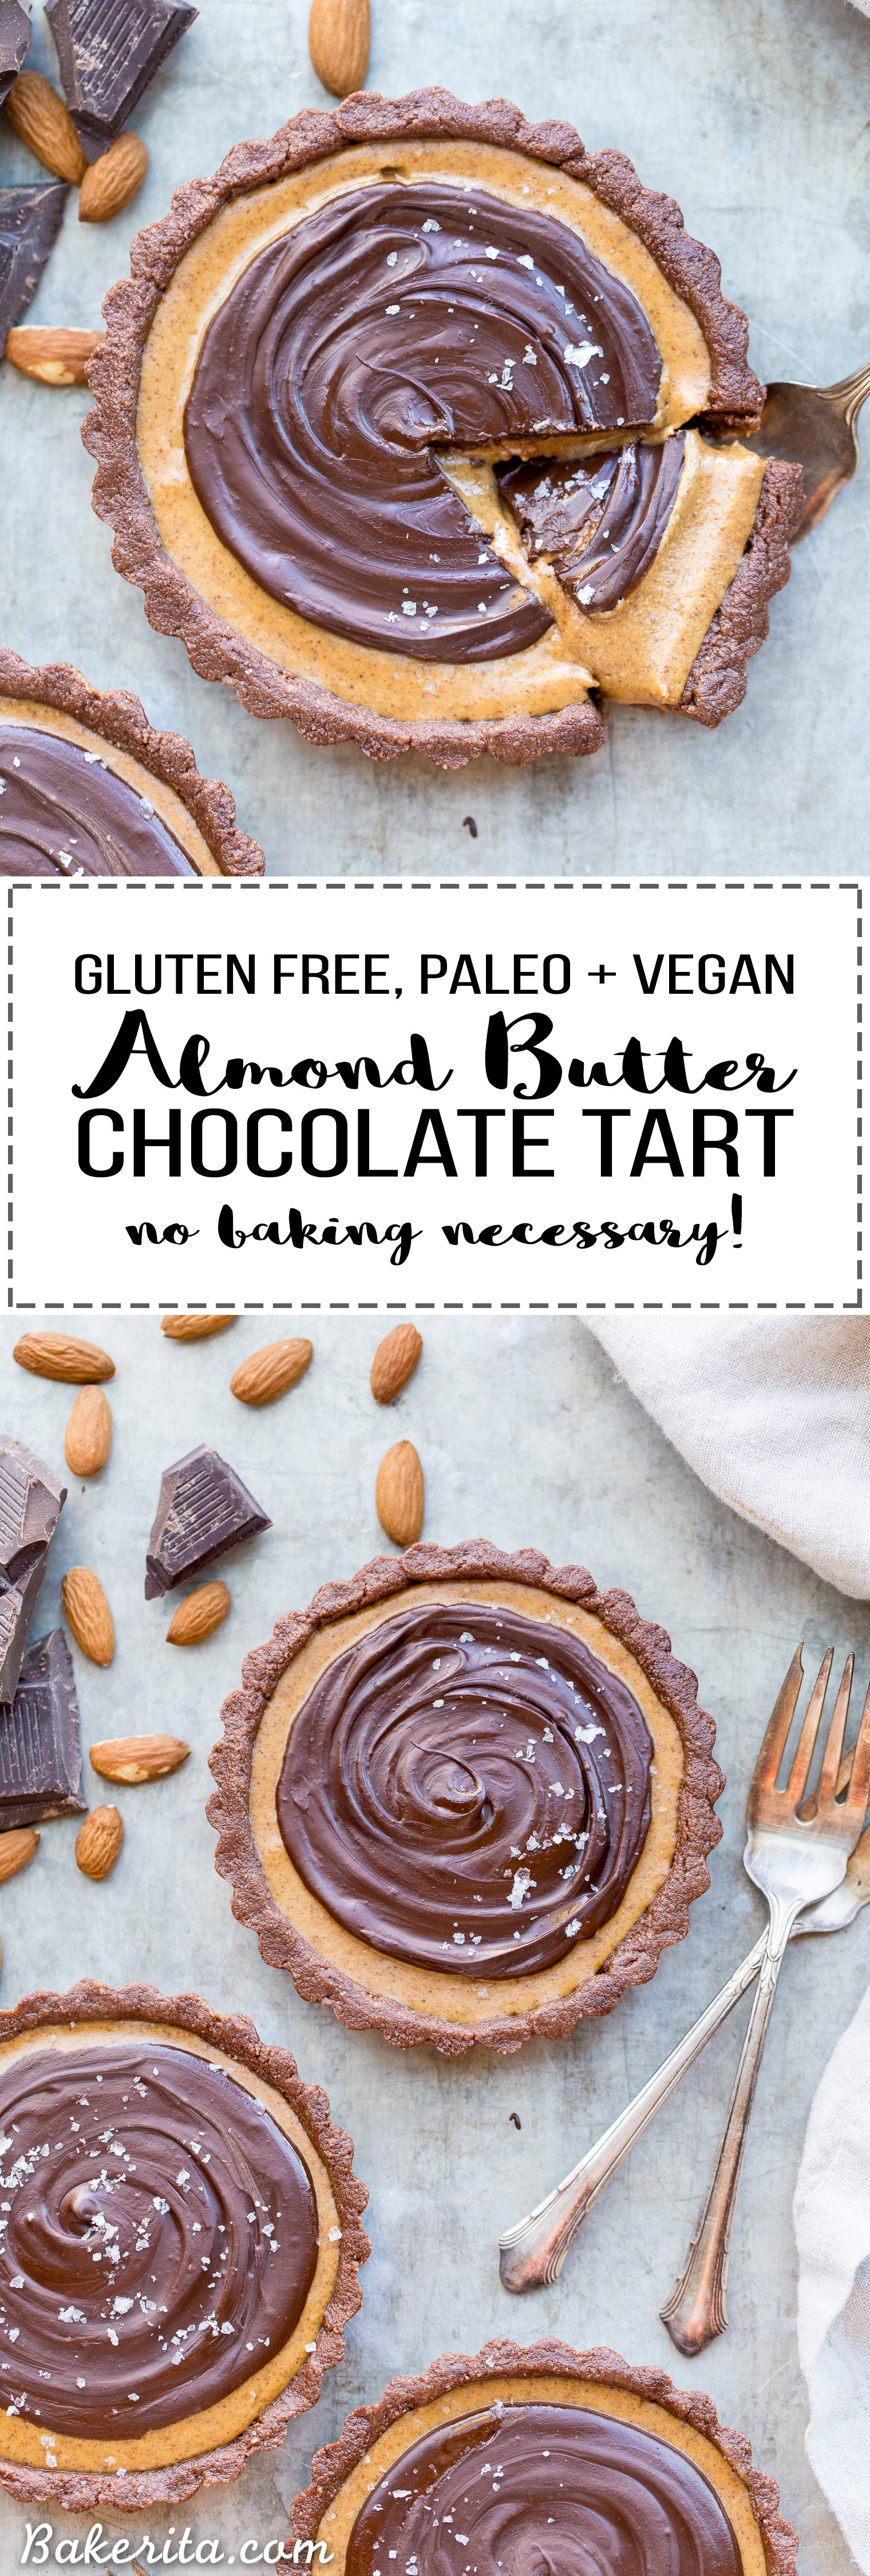 This No Bake Chocolate Almond Butter Tart tastes like a giant almond butter cup! There's no baking required and it's gluten-free, paleo, and vegan. You'll adore this melt in your mouth tart.